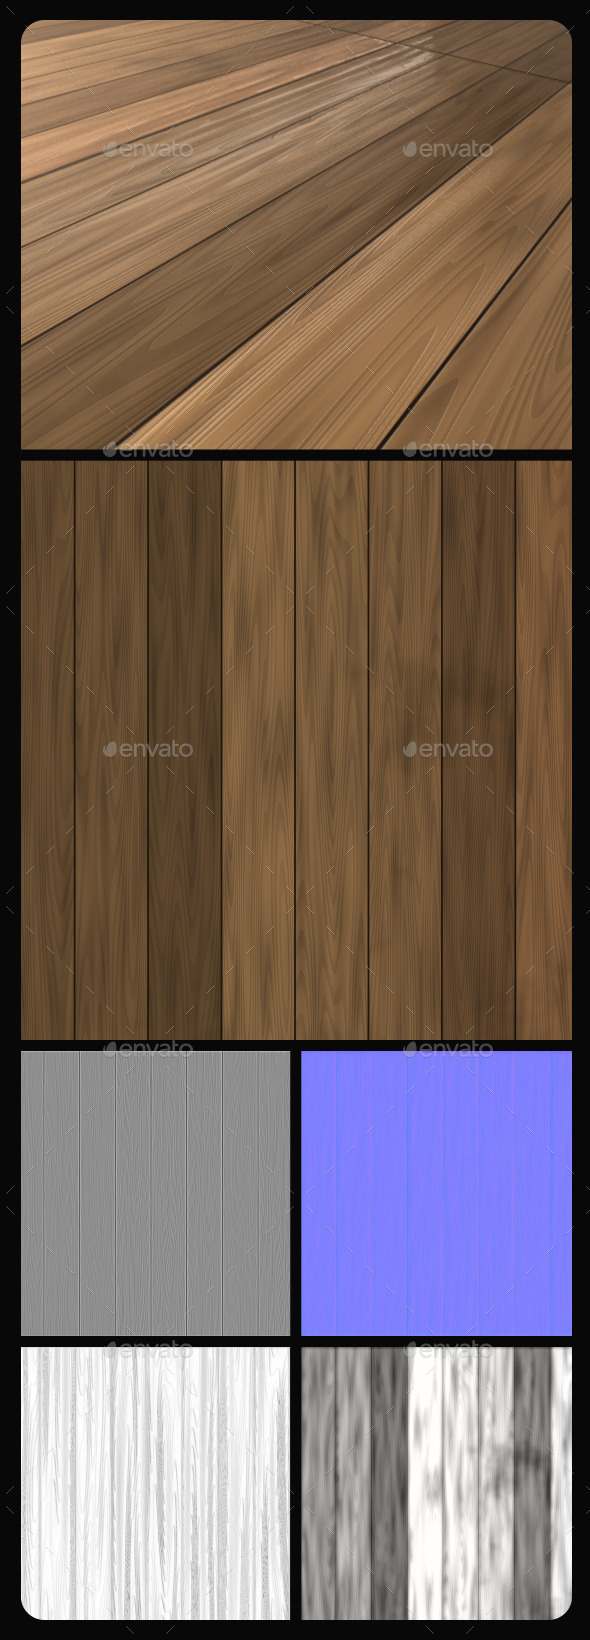 Wood Planks Tile Texture 2 - 3DOcean Item for Sale